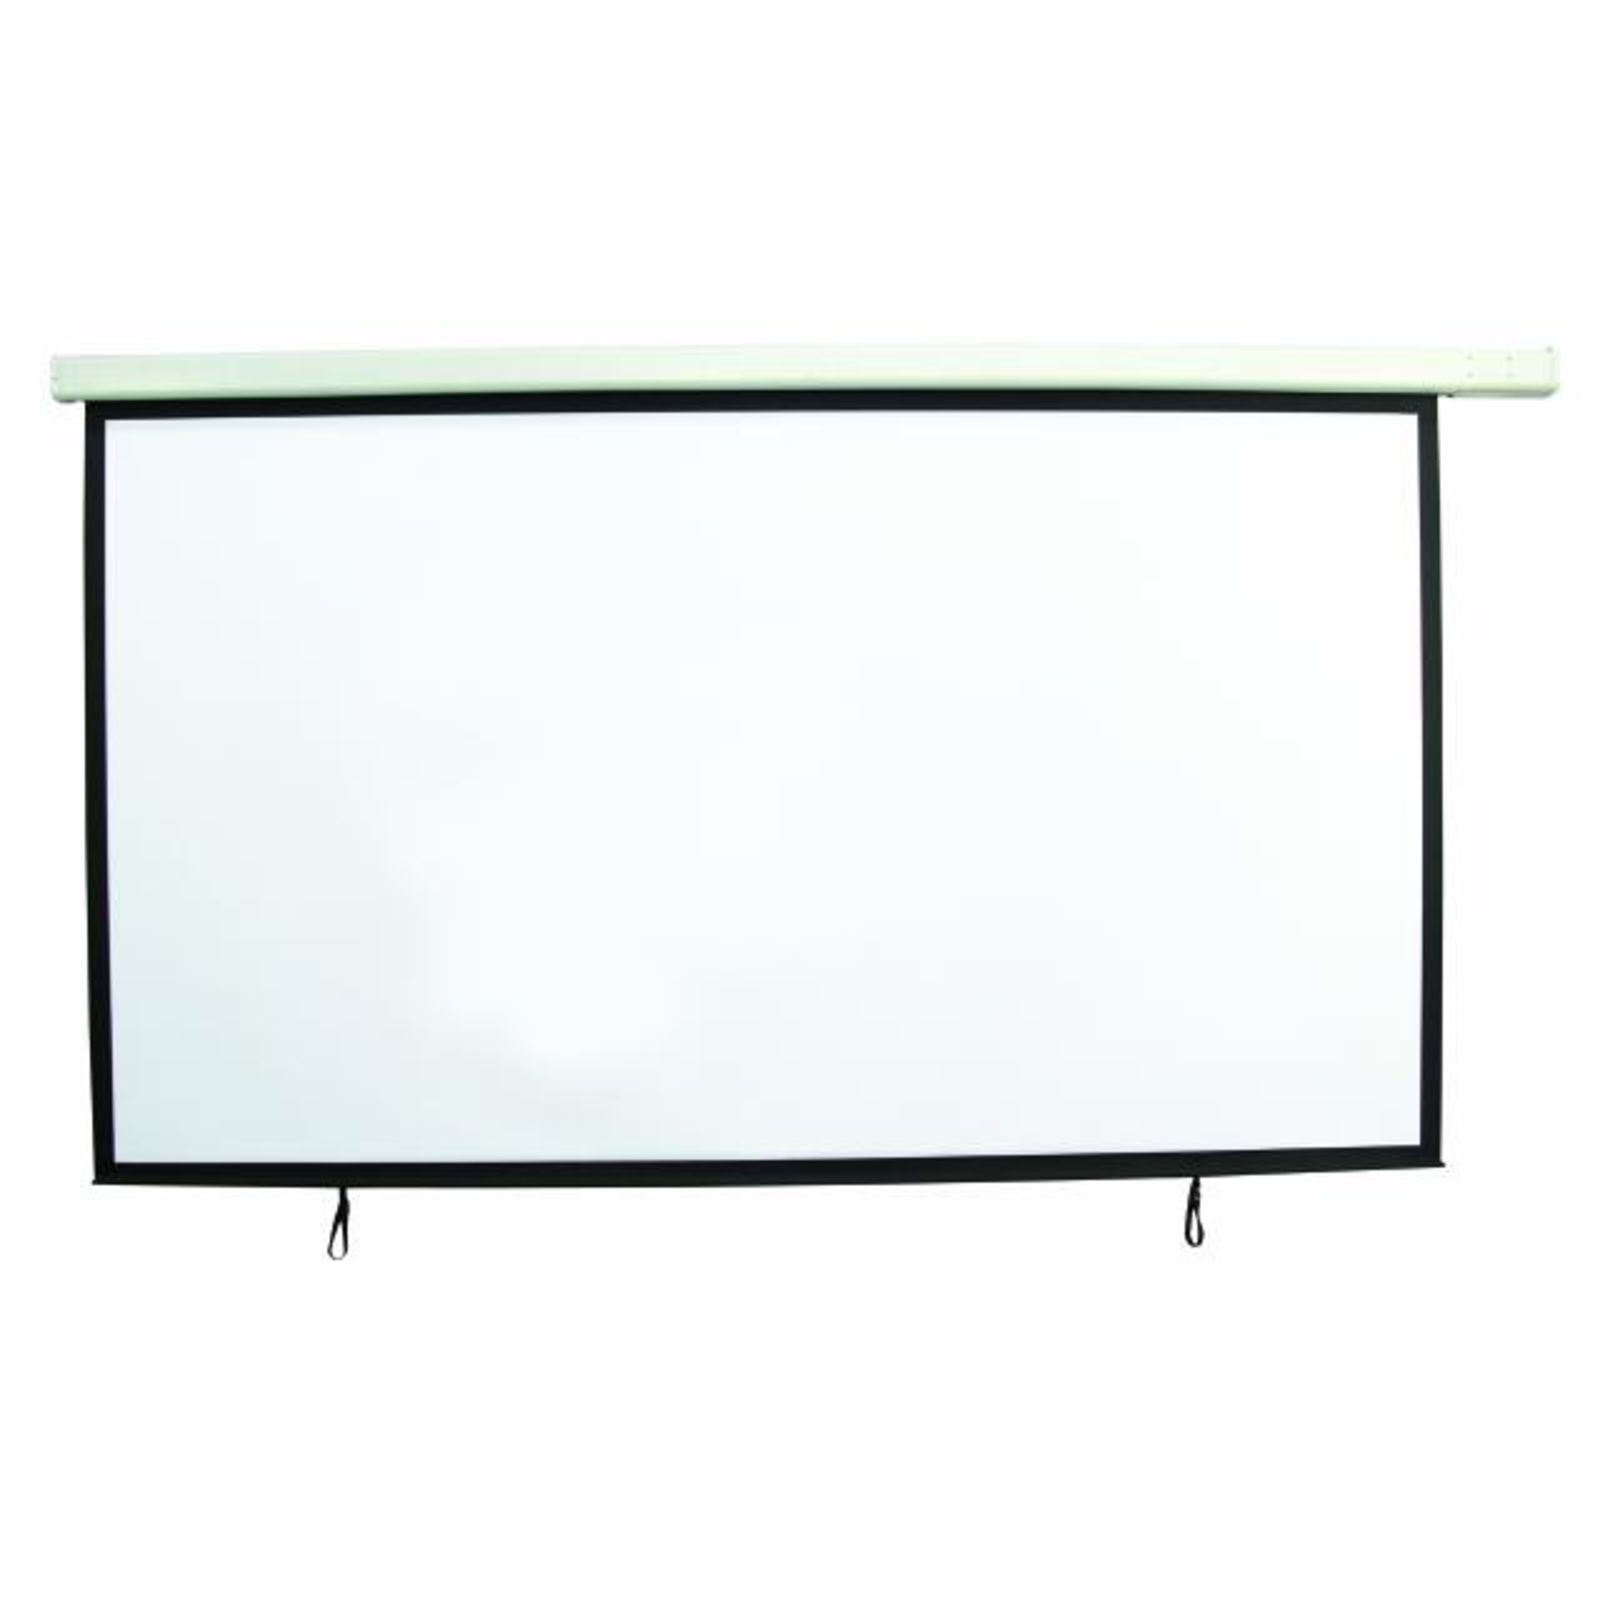 "Eurolite Motorized Screen IR 4:3 240x180cm 120"" Product Image"